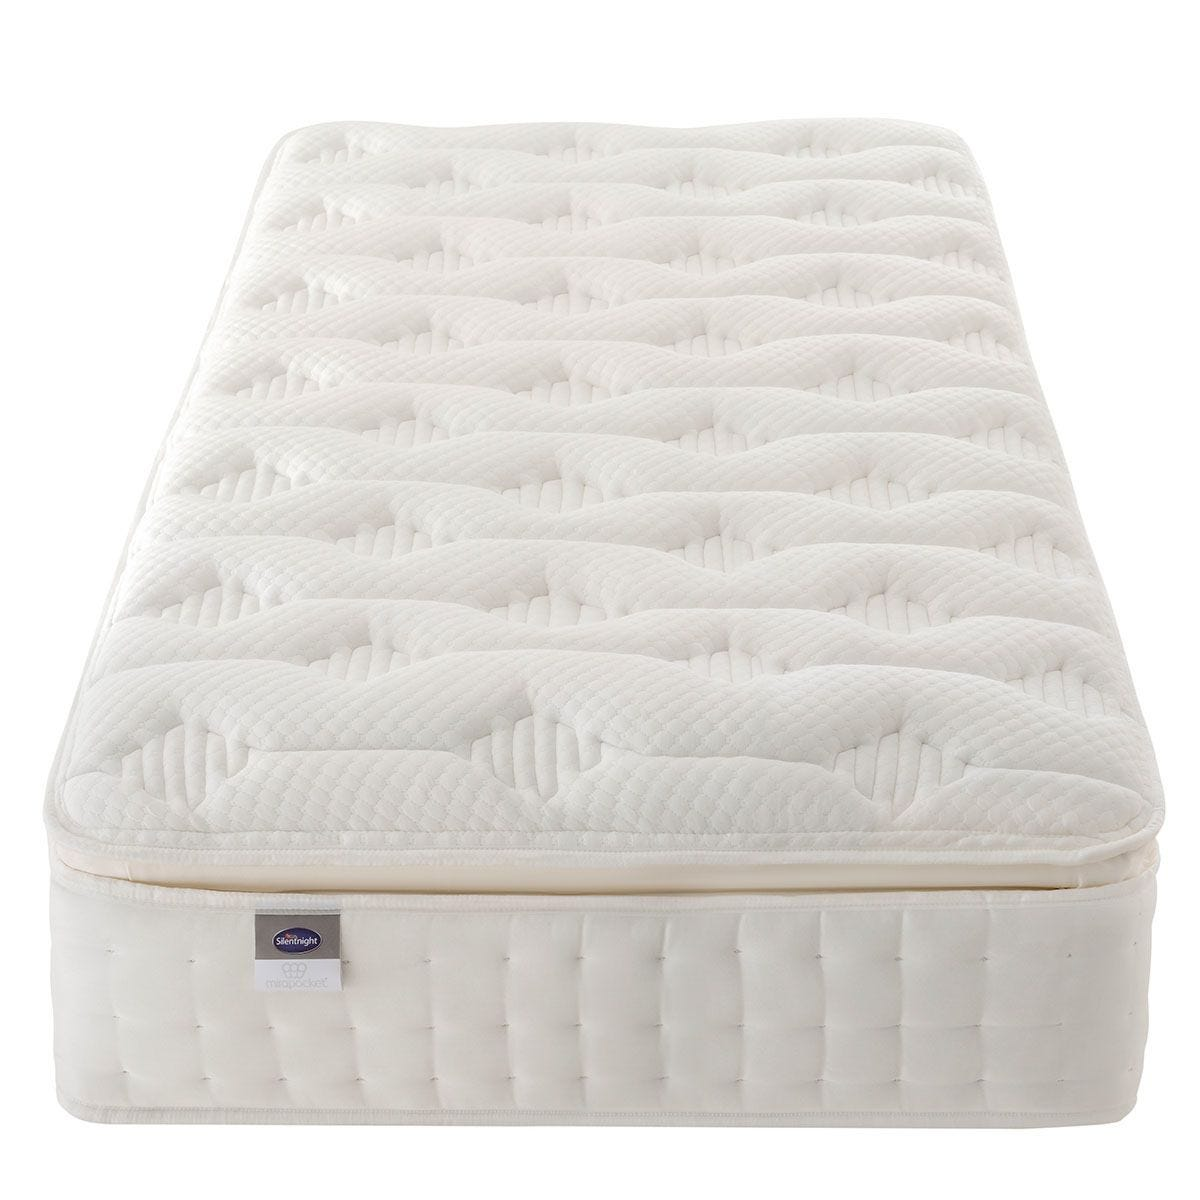 Silentnight Mirapocket Latex 1000 Mattress - White Single